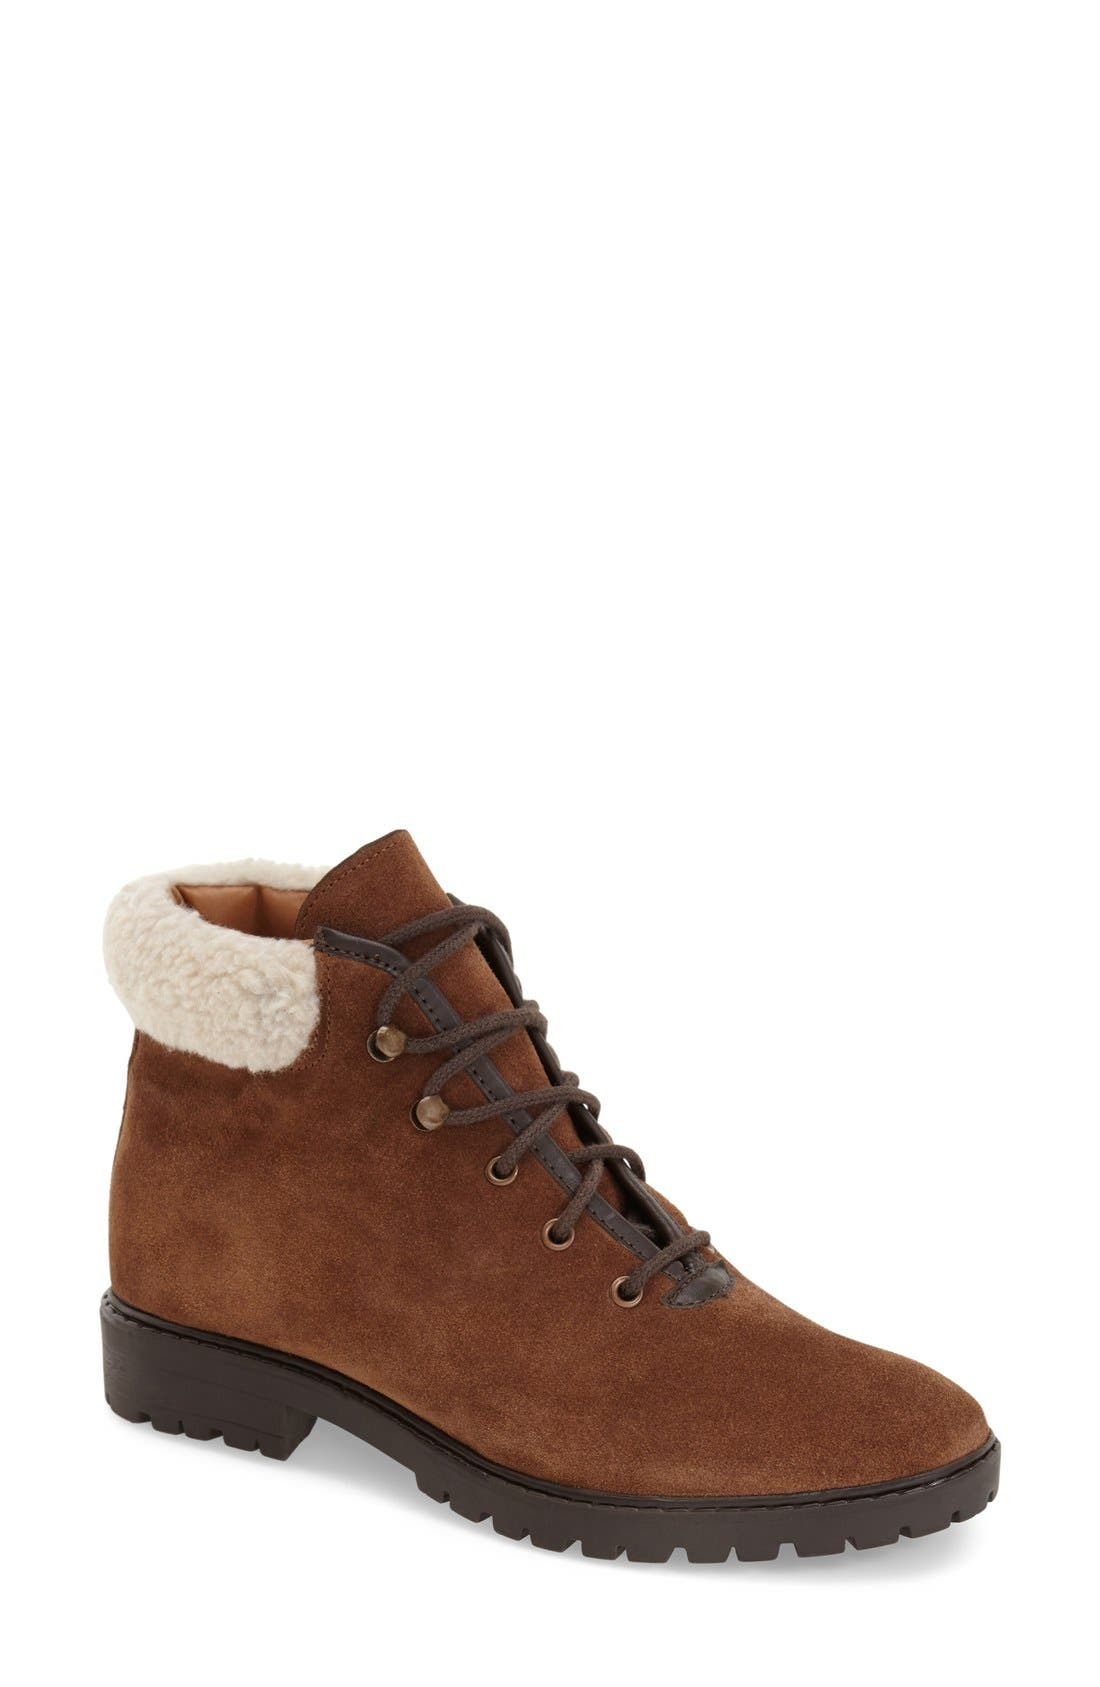 Alternate Image 1 Selected - Topshop Lace-Up Ankle Boots with Faux Fur Trim (Women)